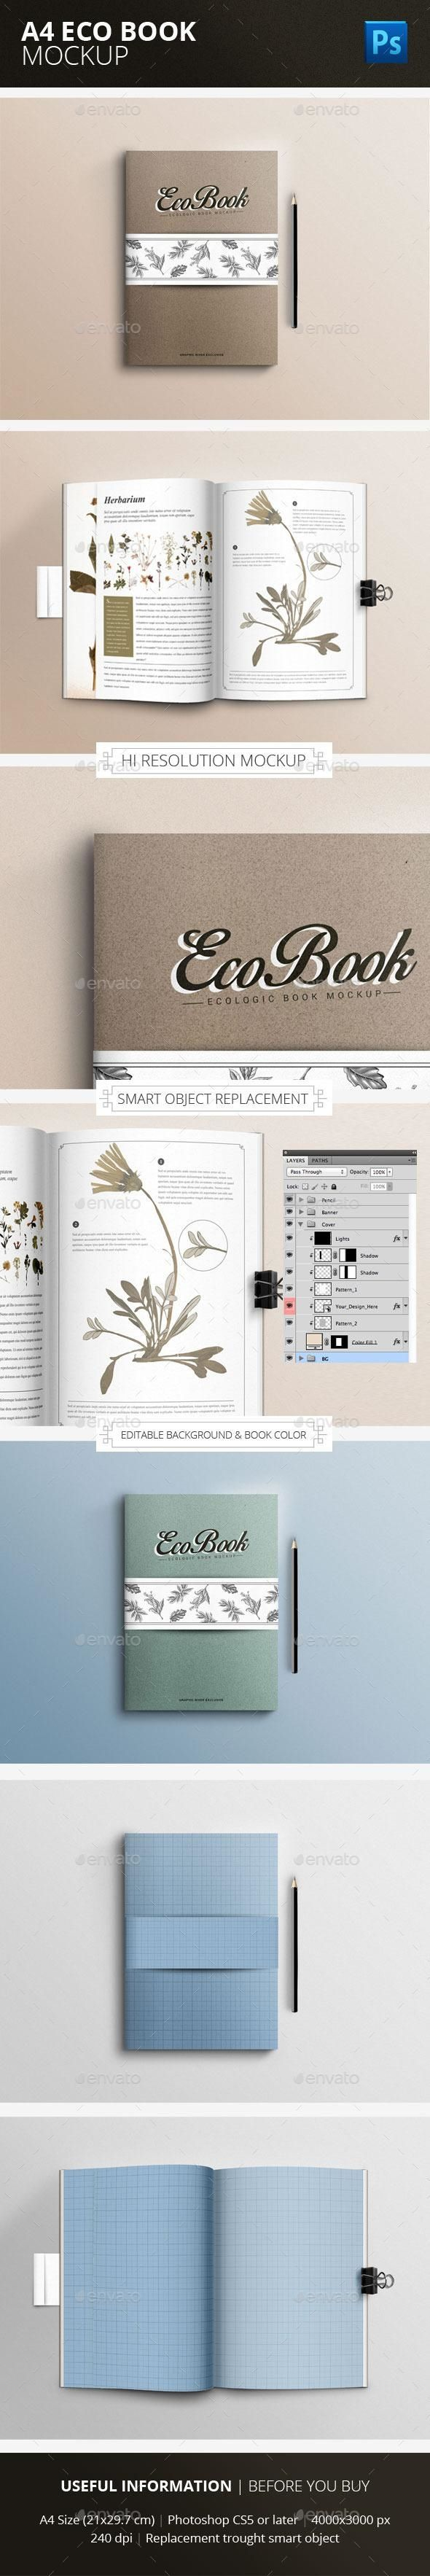 eco book mock up psd graphicriver mockups template bookmockup templatedesign graphicdesign graphic designcollection designresource also rh pinterest